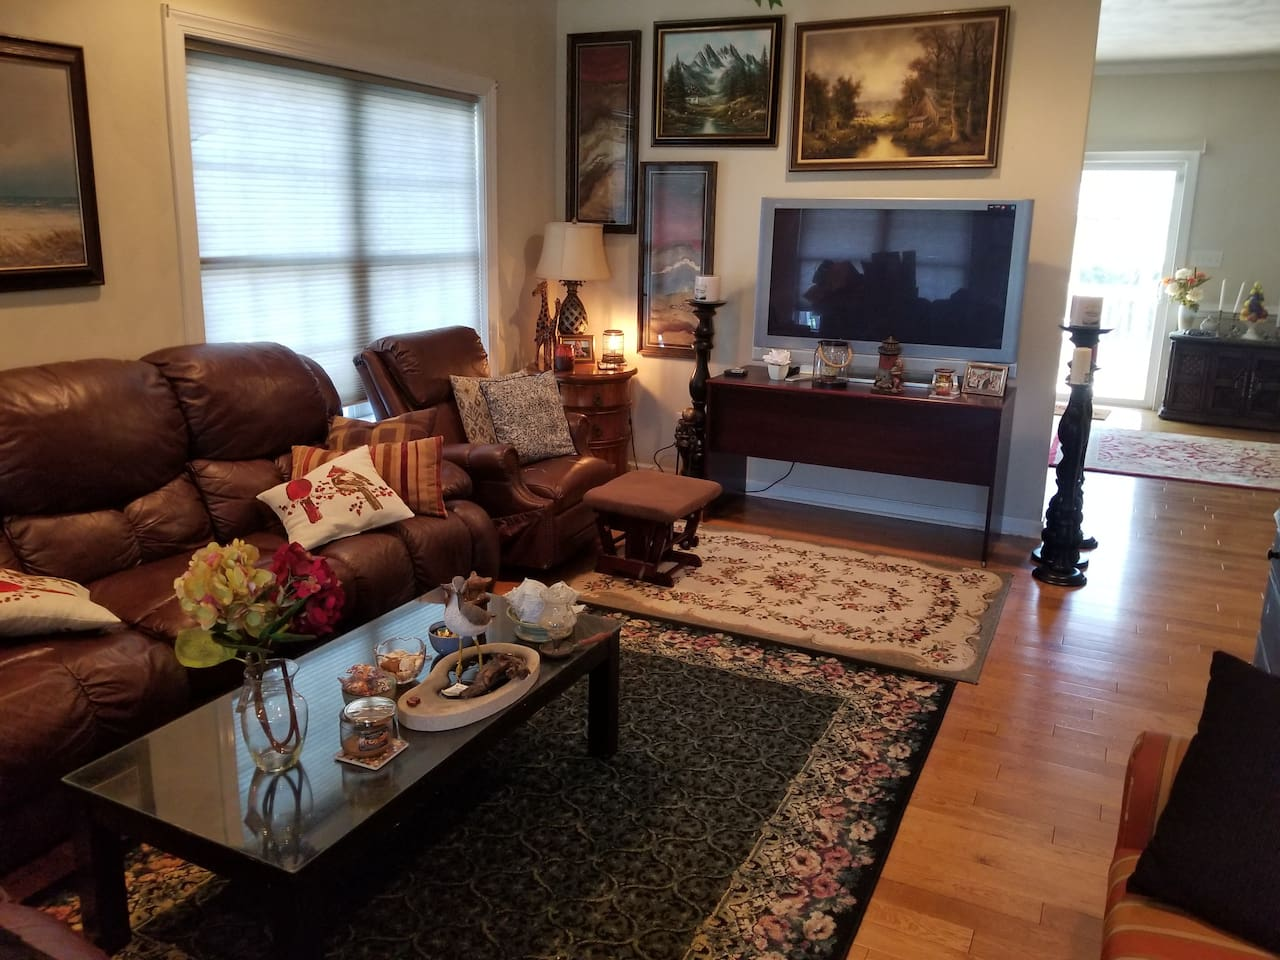 Comfy living space shared